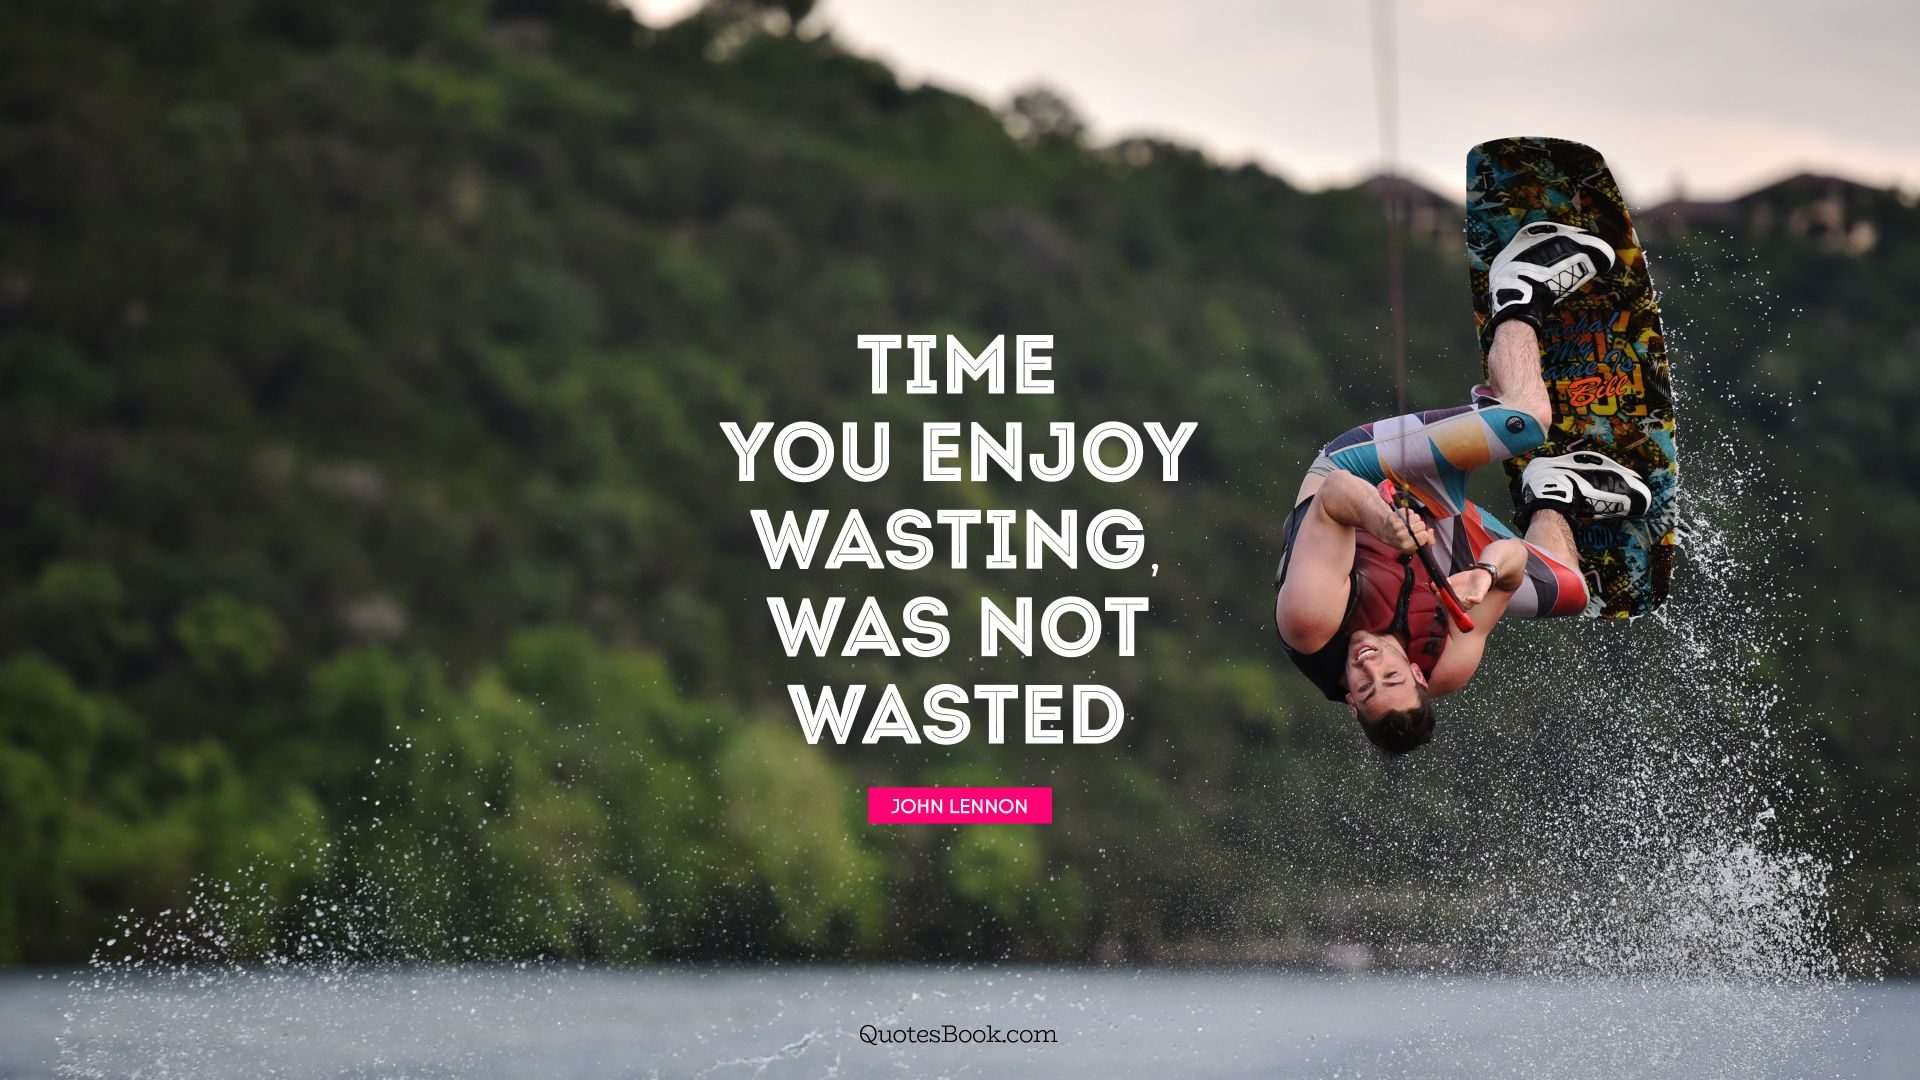 Time you enjoy wasting, was not wasted. - Quote by John Lennon